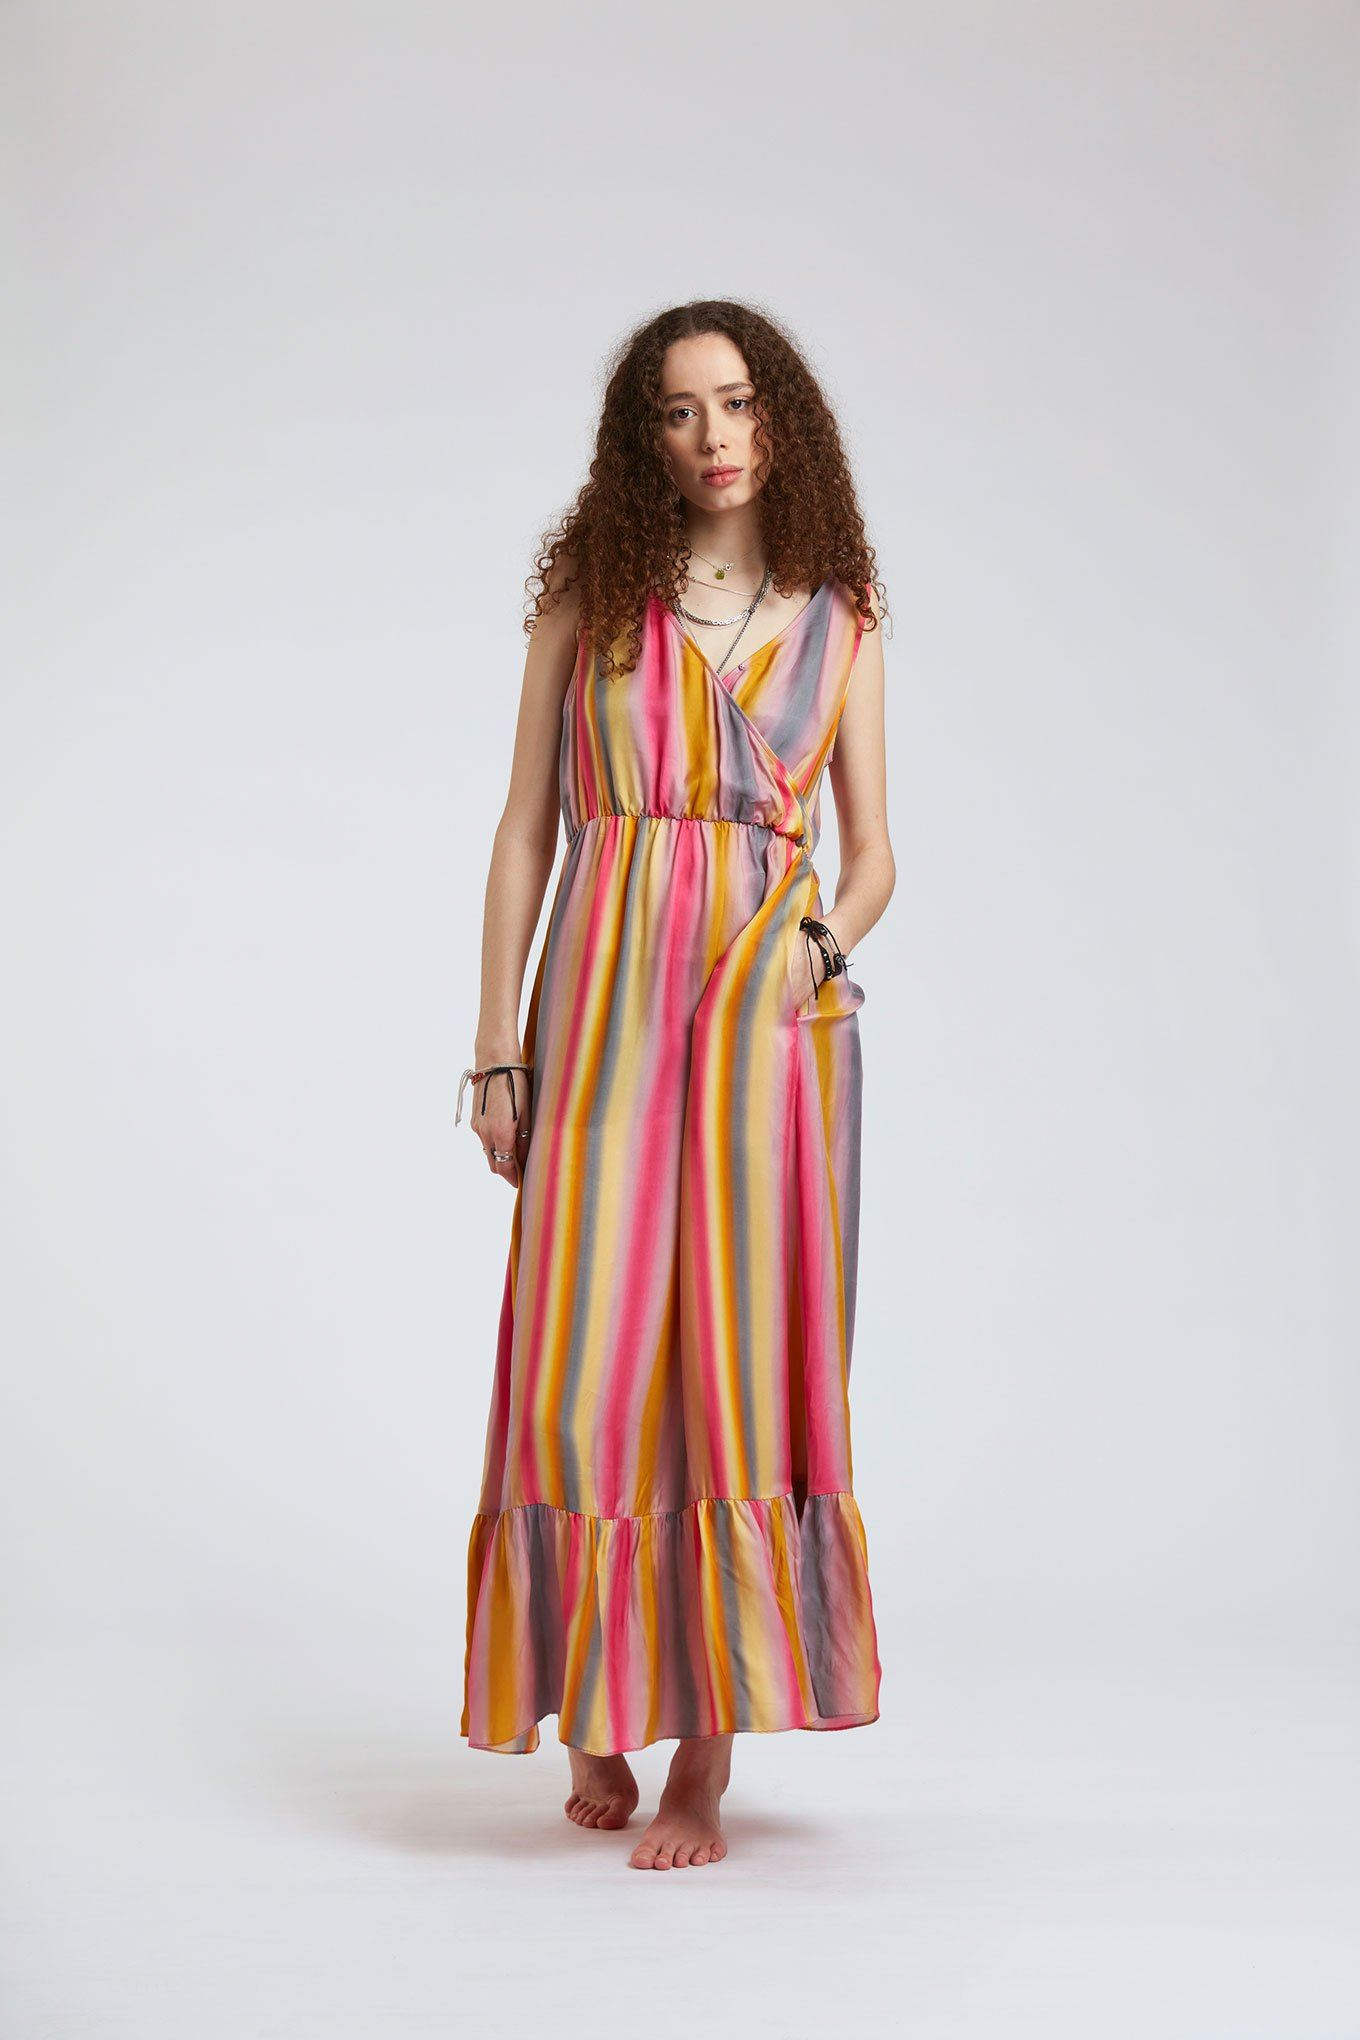 Dress - WHIRLYGIG Cupro Dress Glasto-Nudes